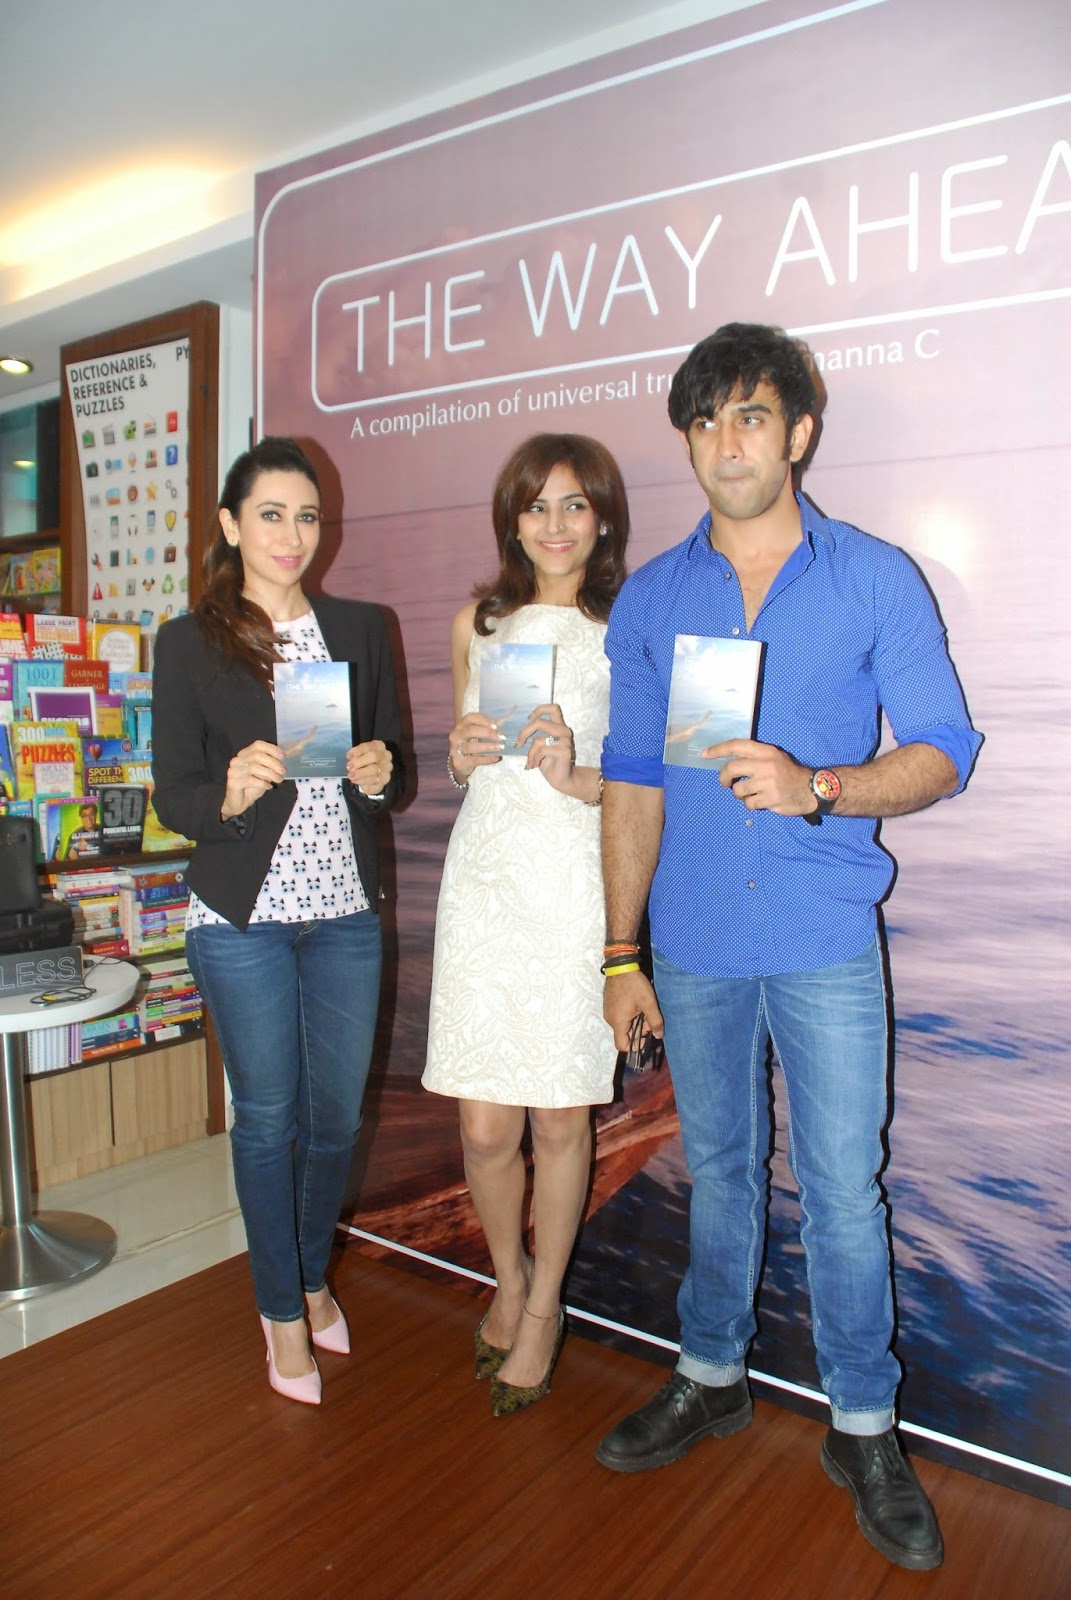 Karisma Kapoor launches Tamanna C's debut book 'The Way Ahead'